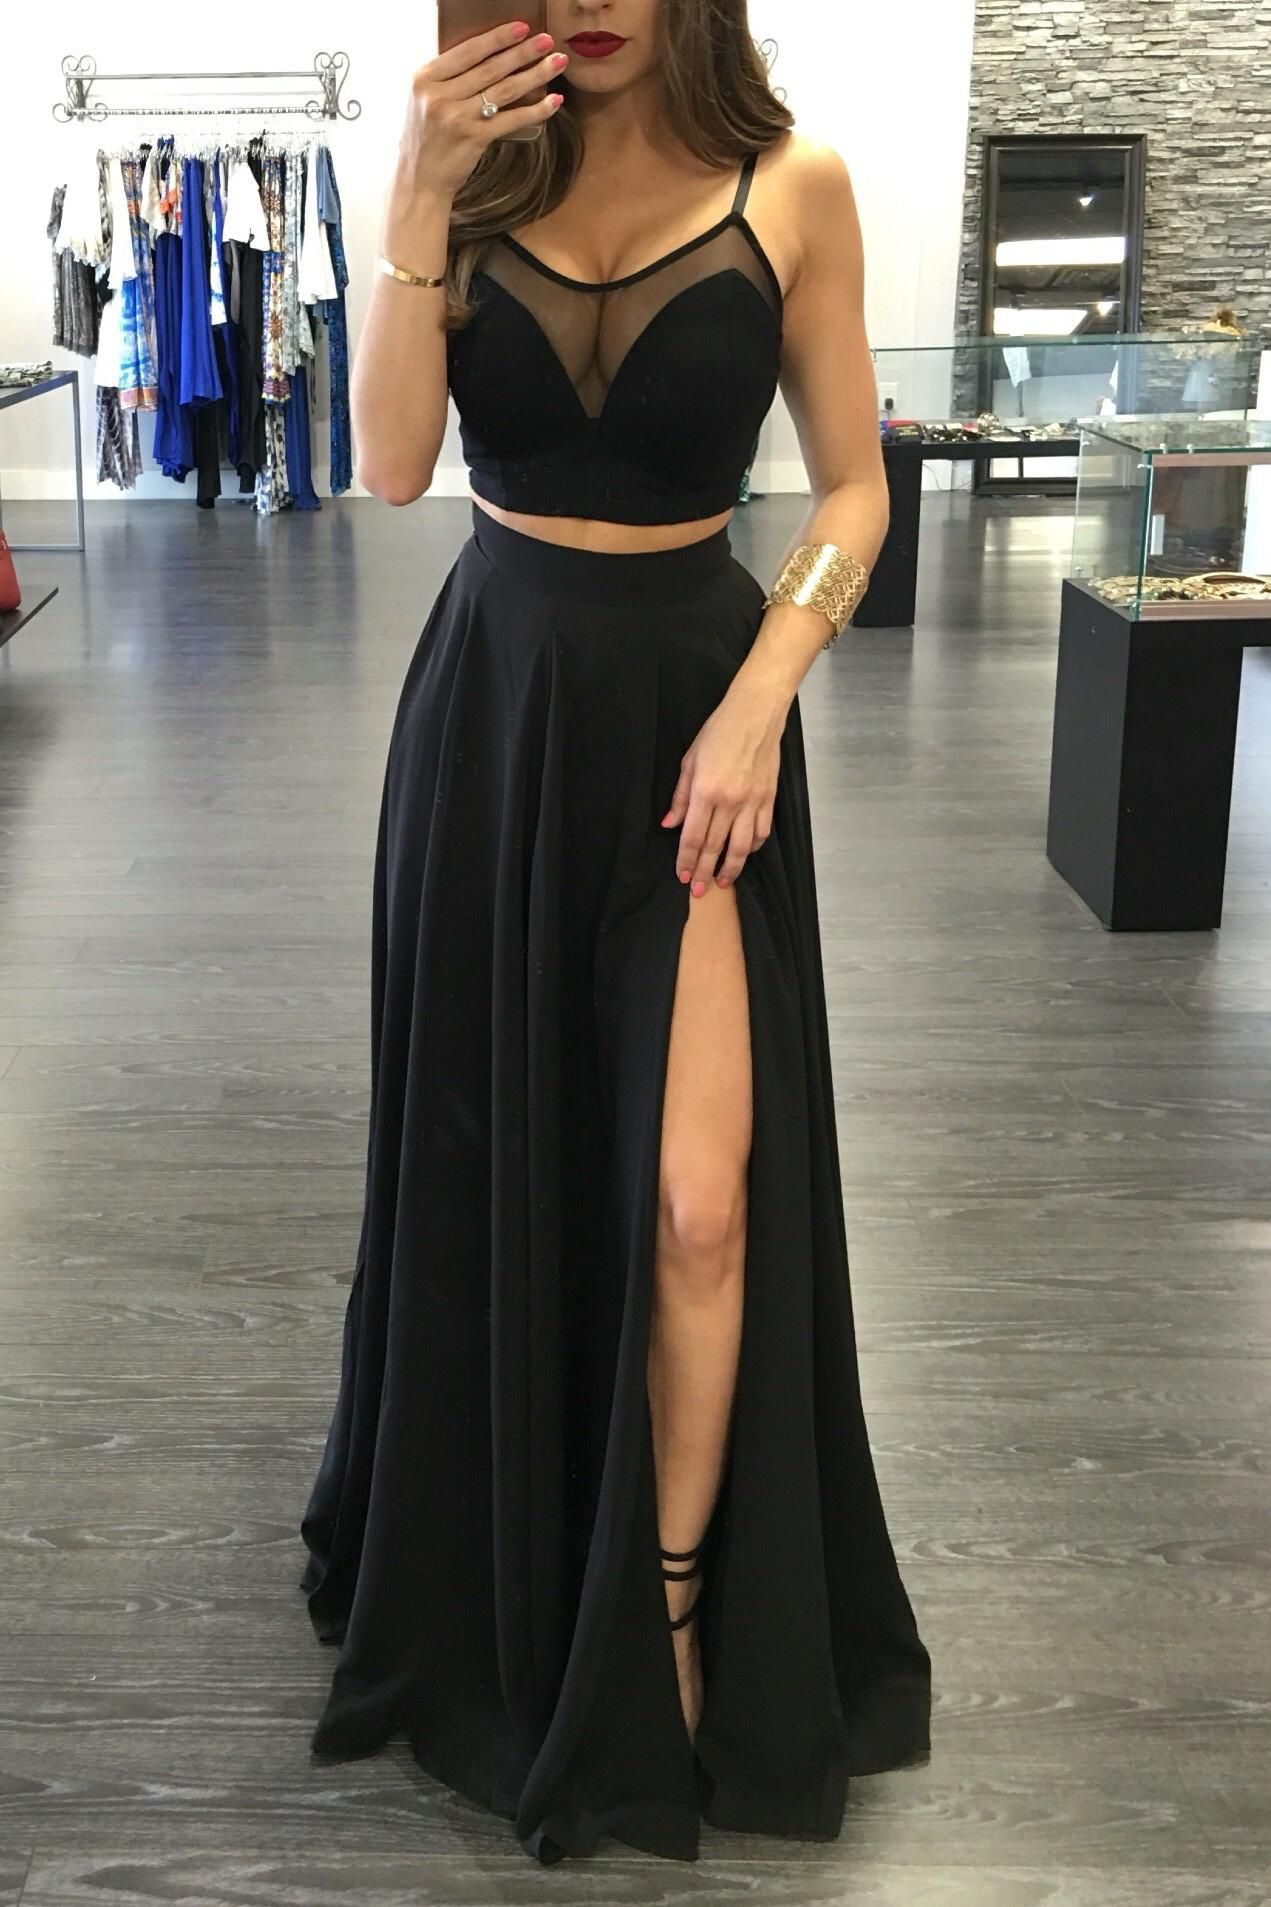 Popular black two pieces prom dressspaghetti straps evening dress